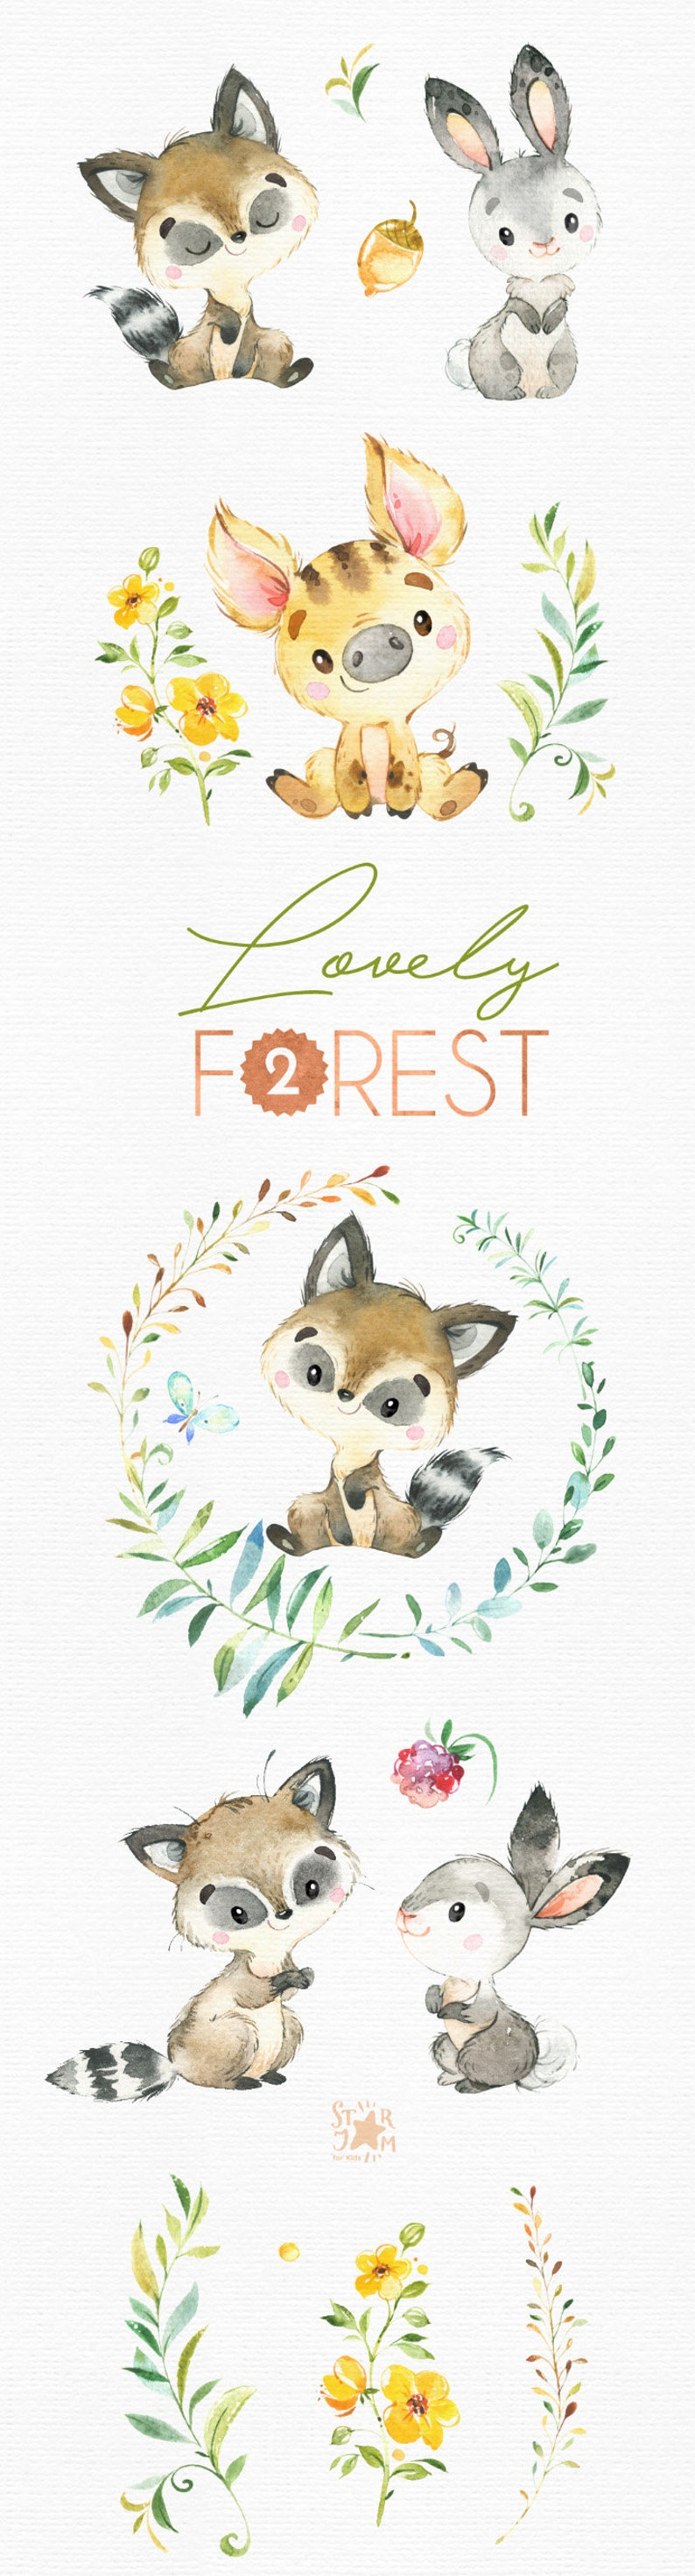 Lovely Forest 2. Little animals clip art watercolor fox | Etsy